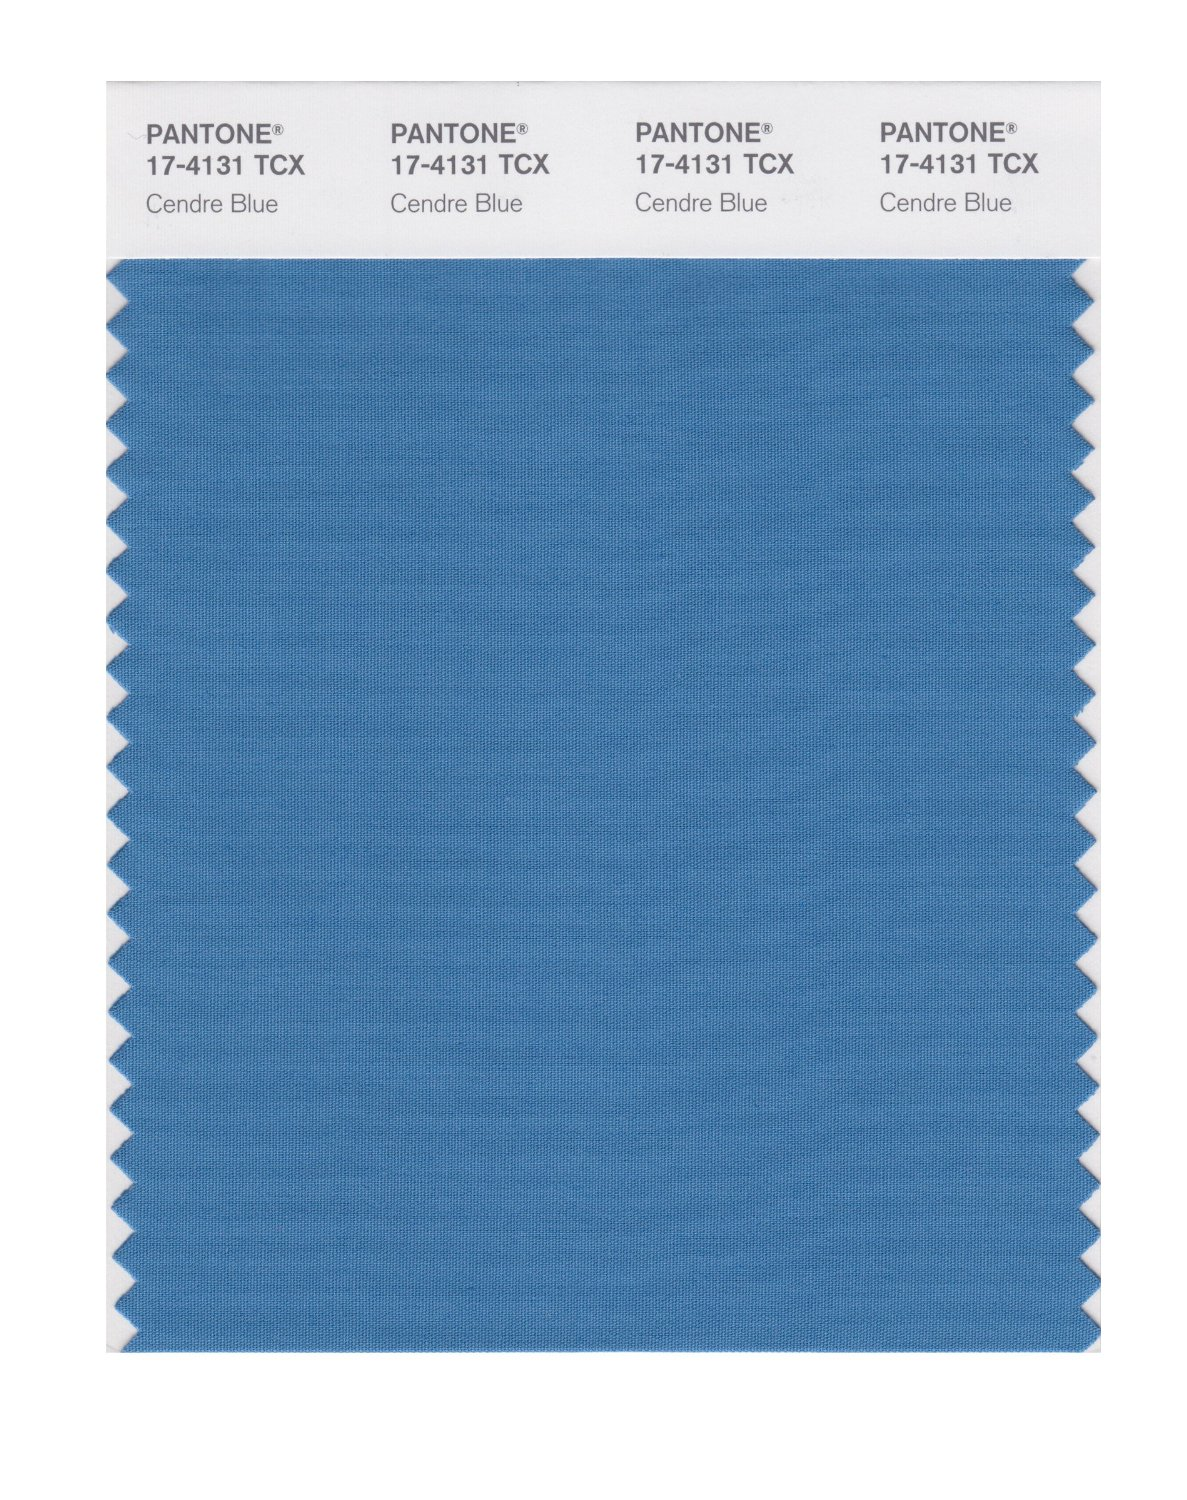 Pantone Smart Swatch 17-4131 Cendre Blue